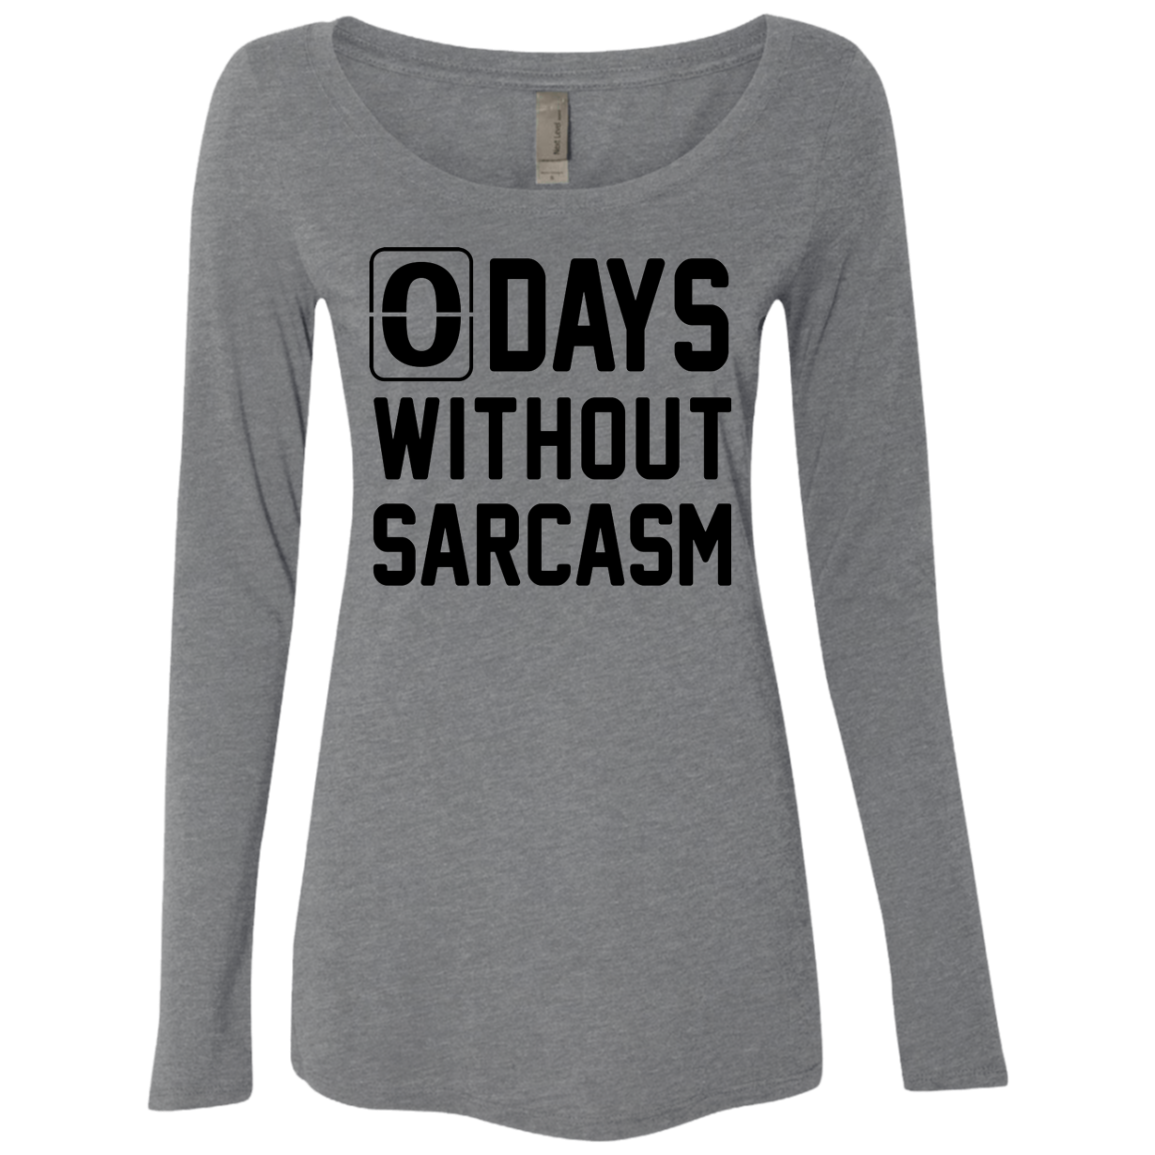 No Days without Sarcasm Women's Long Sleeve Tee